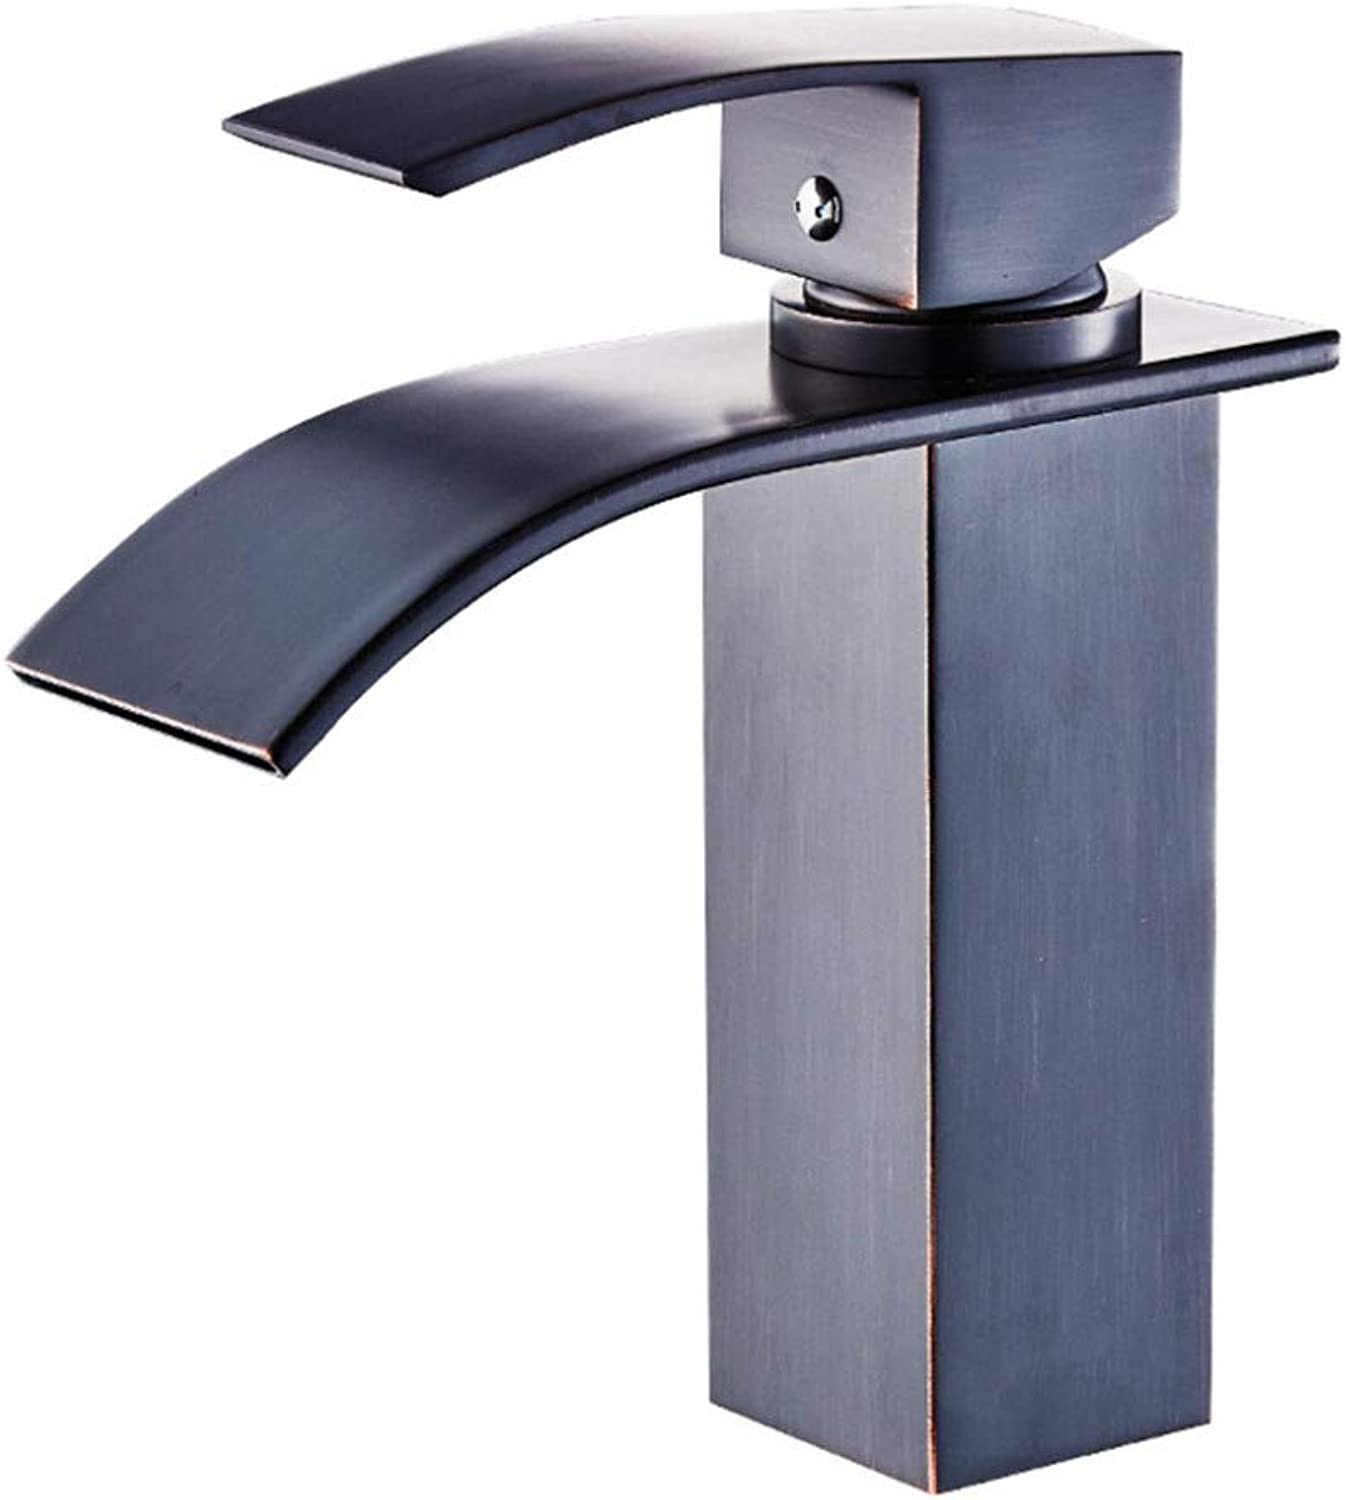 AINILX bathroom accessories Copper Black Bronze Square Faucet, Basin Hot And Cold Faucet, Washbasin Faucet, Waterfall Faucet